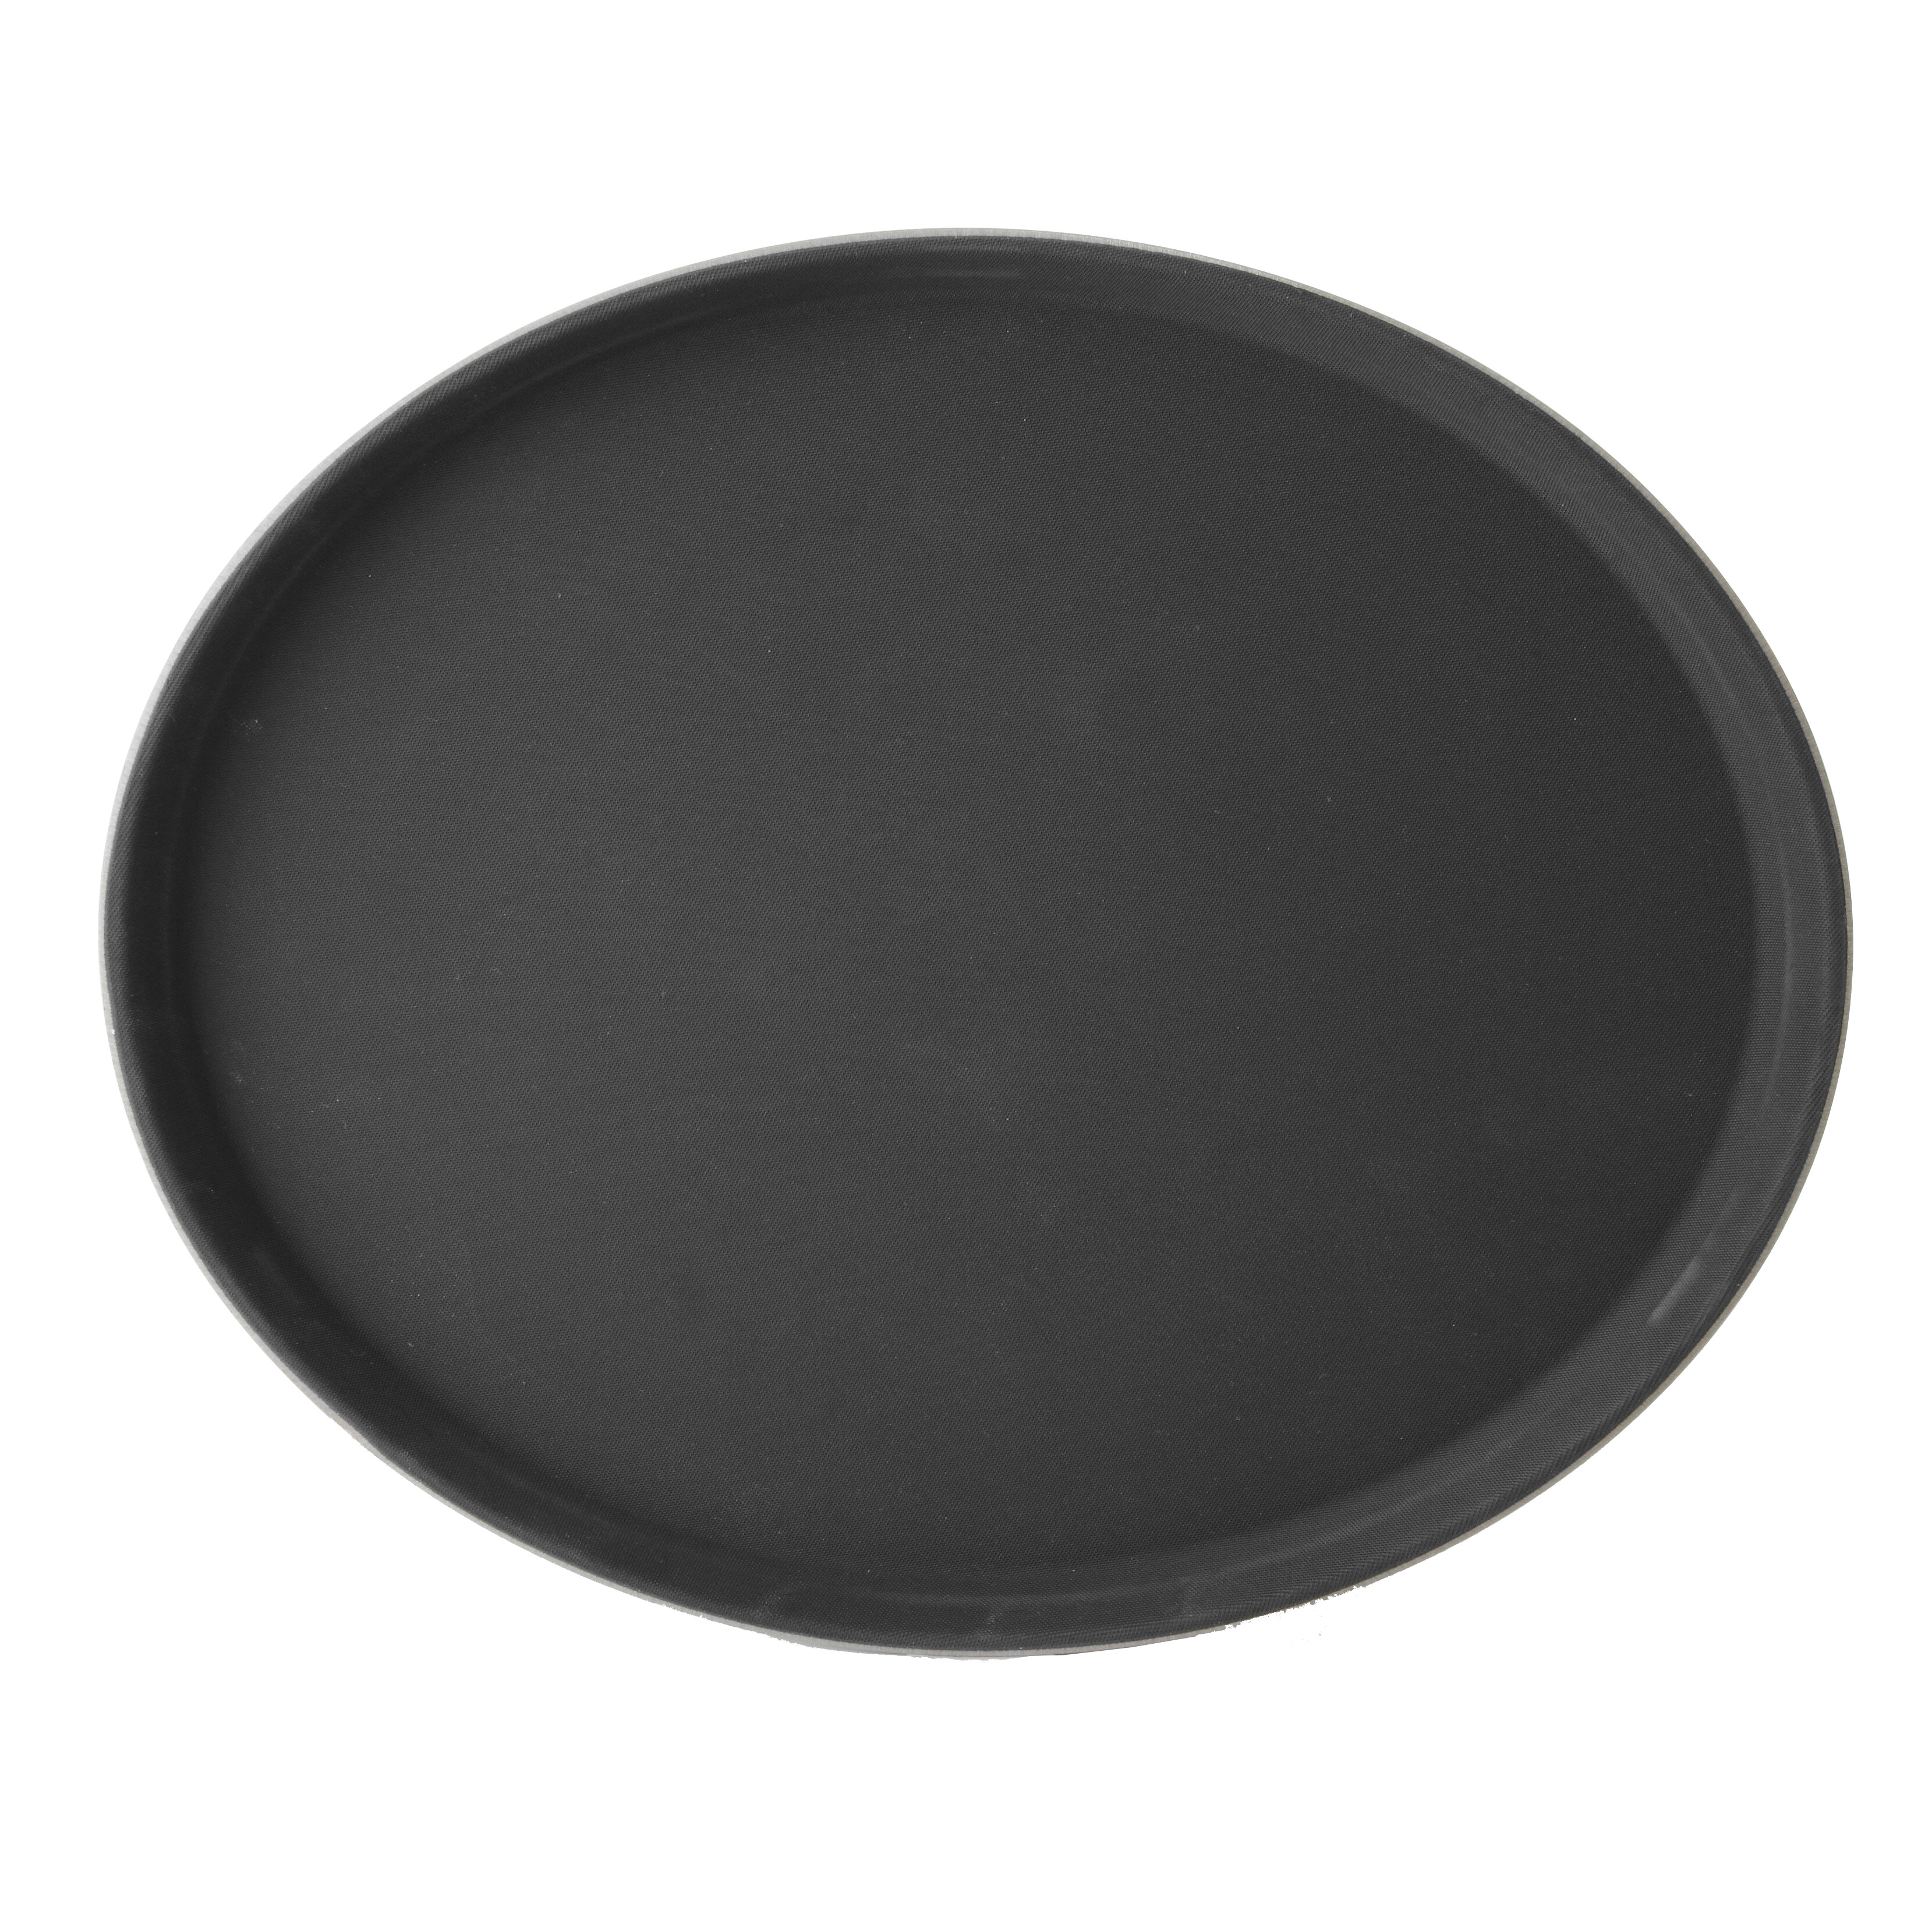 Royal Industries ROY O 2227 BLK serving tray, non-skid